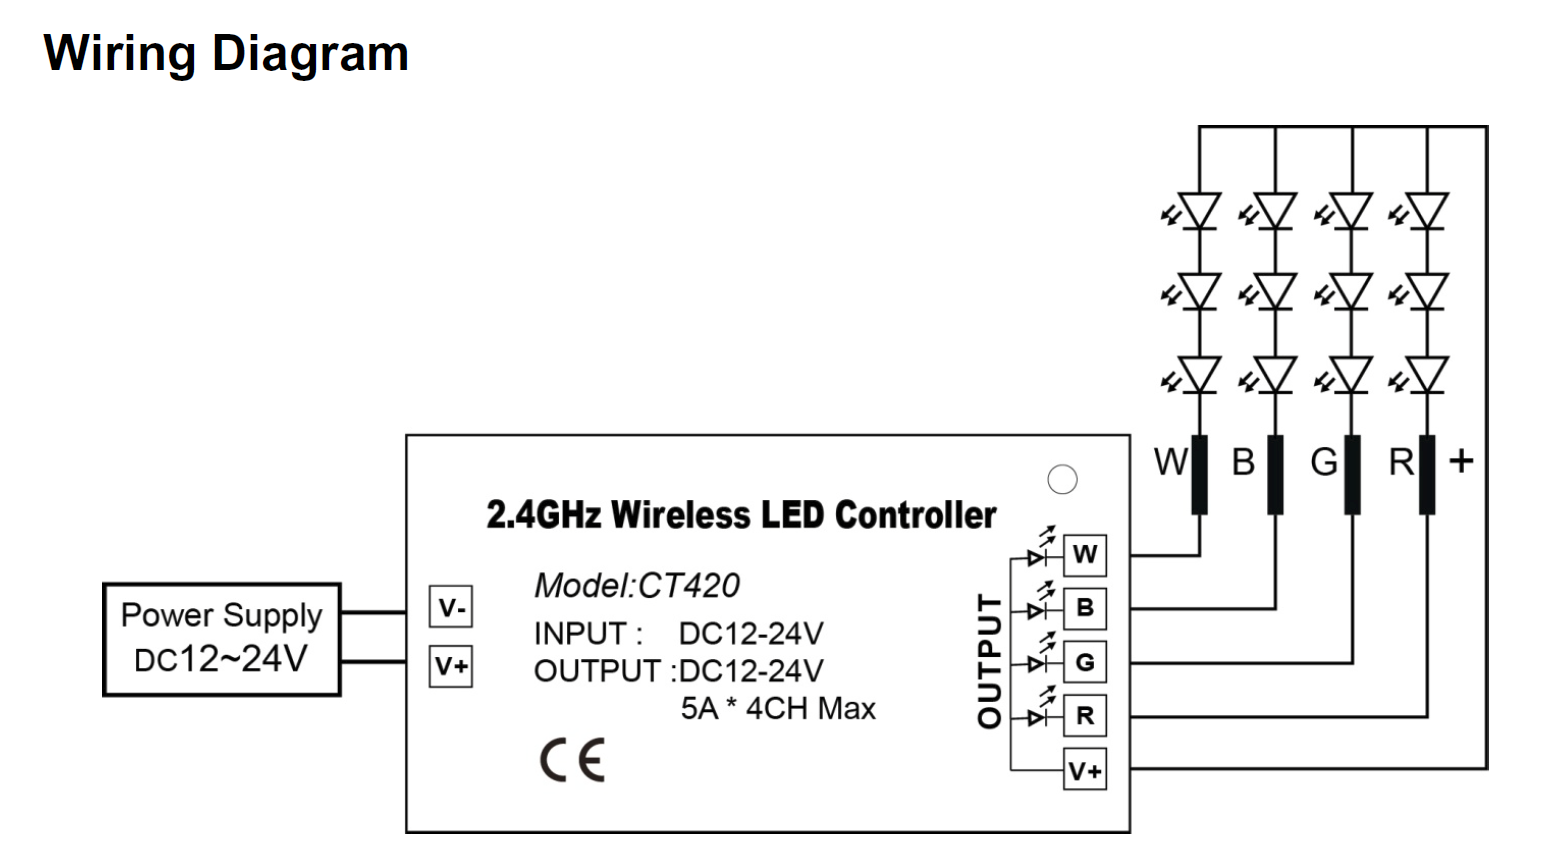 ct420-wiring-diagram.png